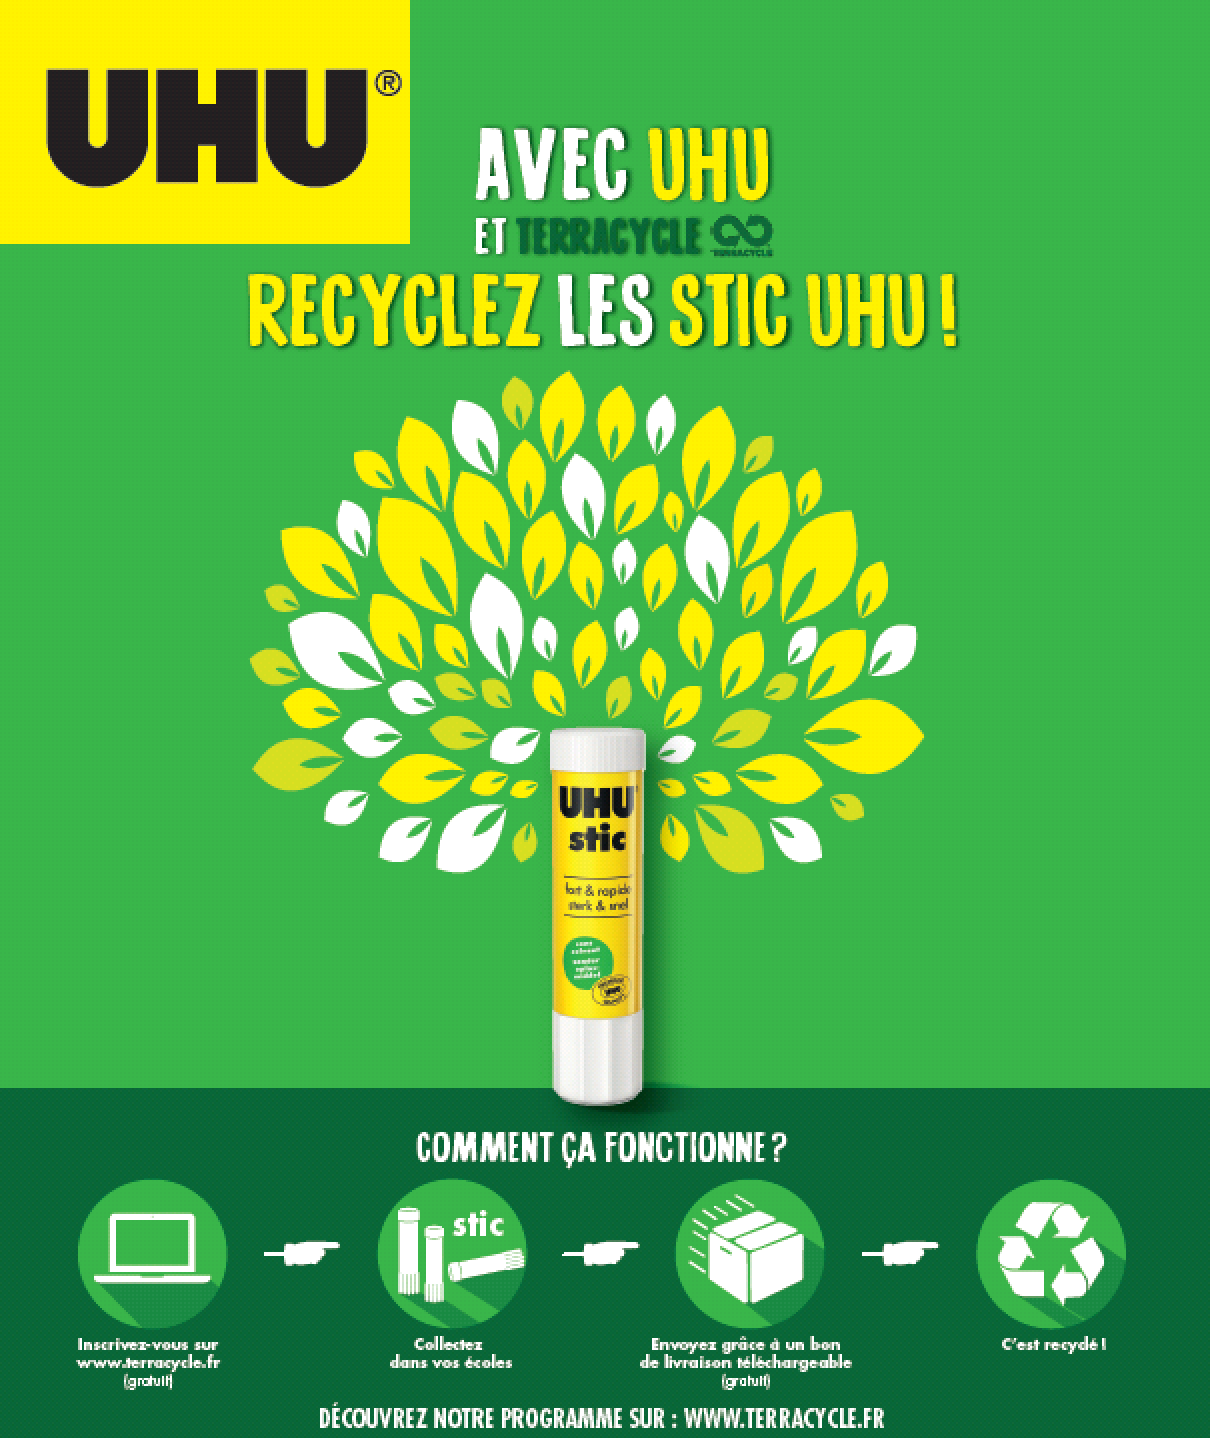 TerraCycle recycle les tubes de colle UHU